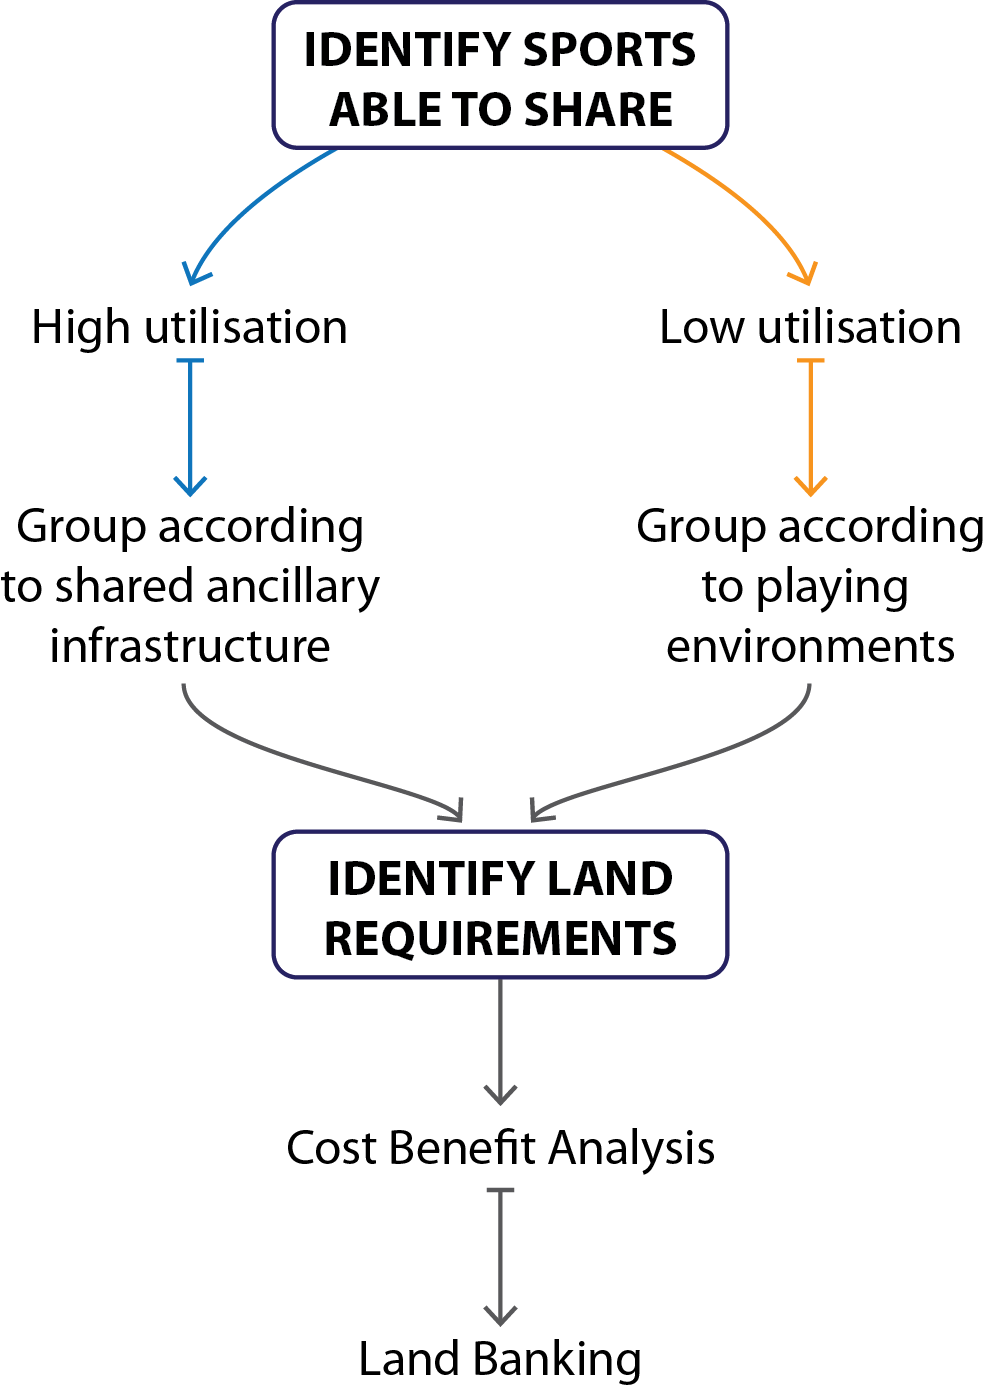 Figure 15. Land Banking Process